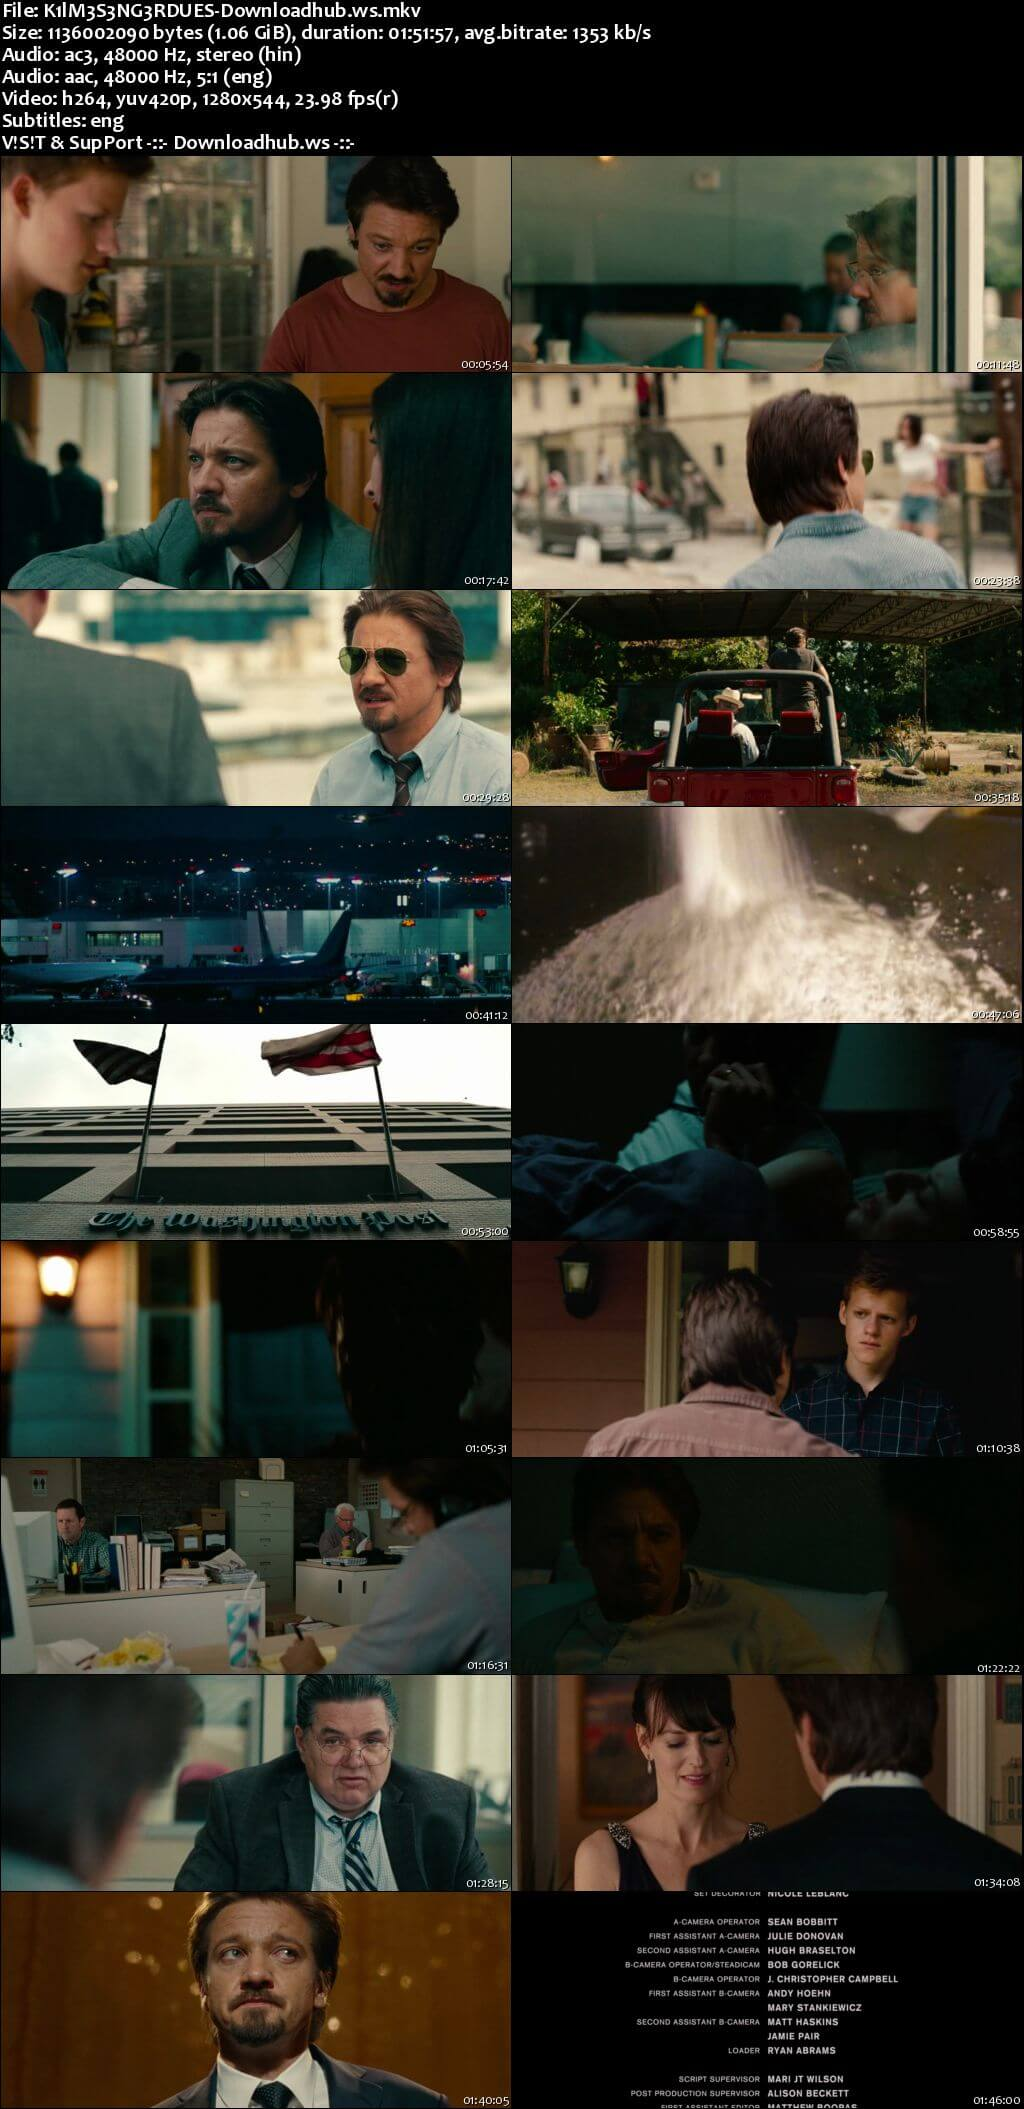 Kill the Messenger 2014 Hindi Dual Audio HDRip 720p Download